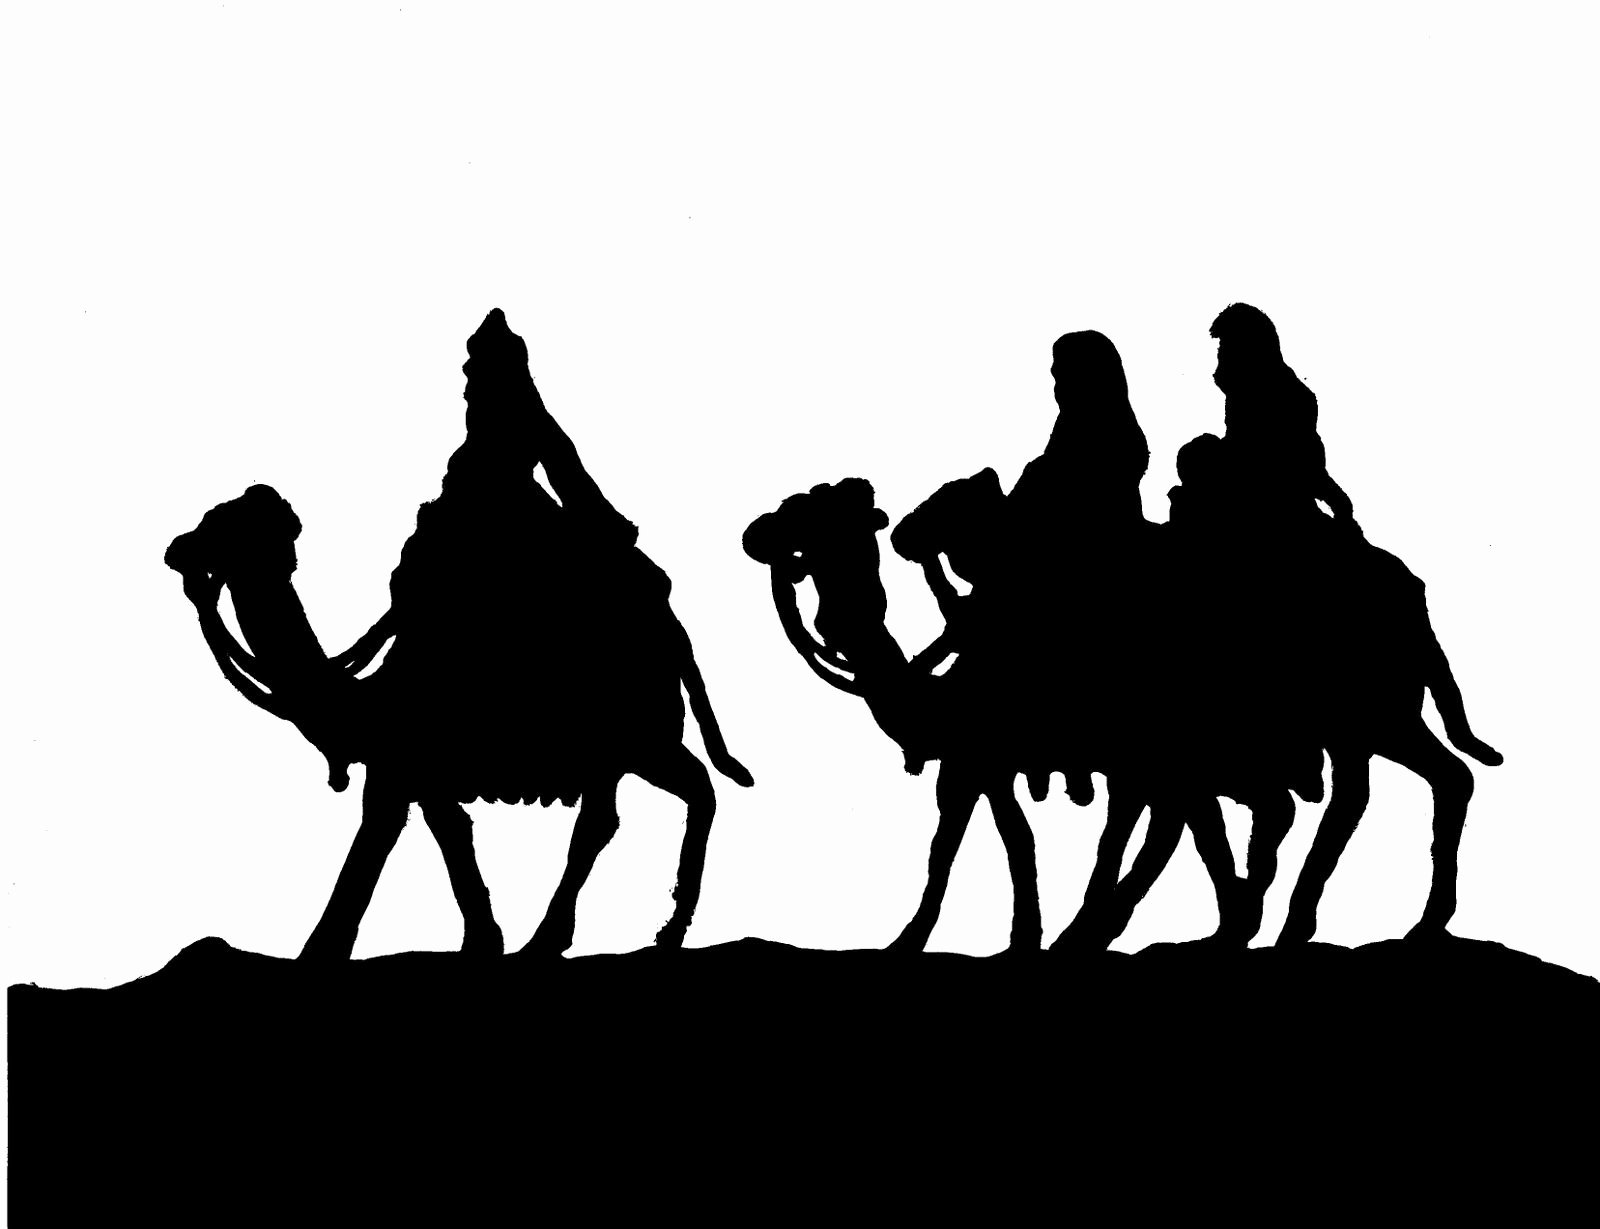 Nativity Silhouette Patterns Lovely Silhouette Nativity Scene Pattern